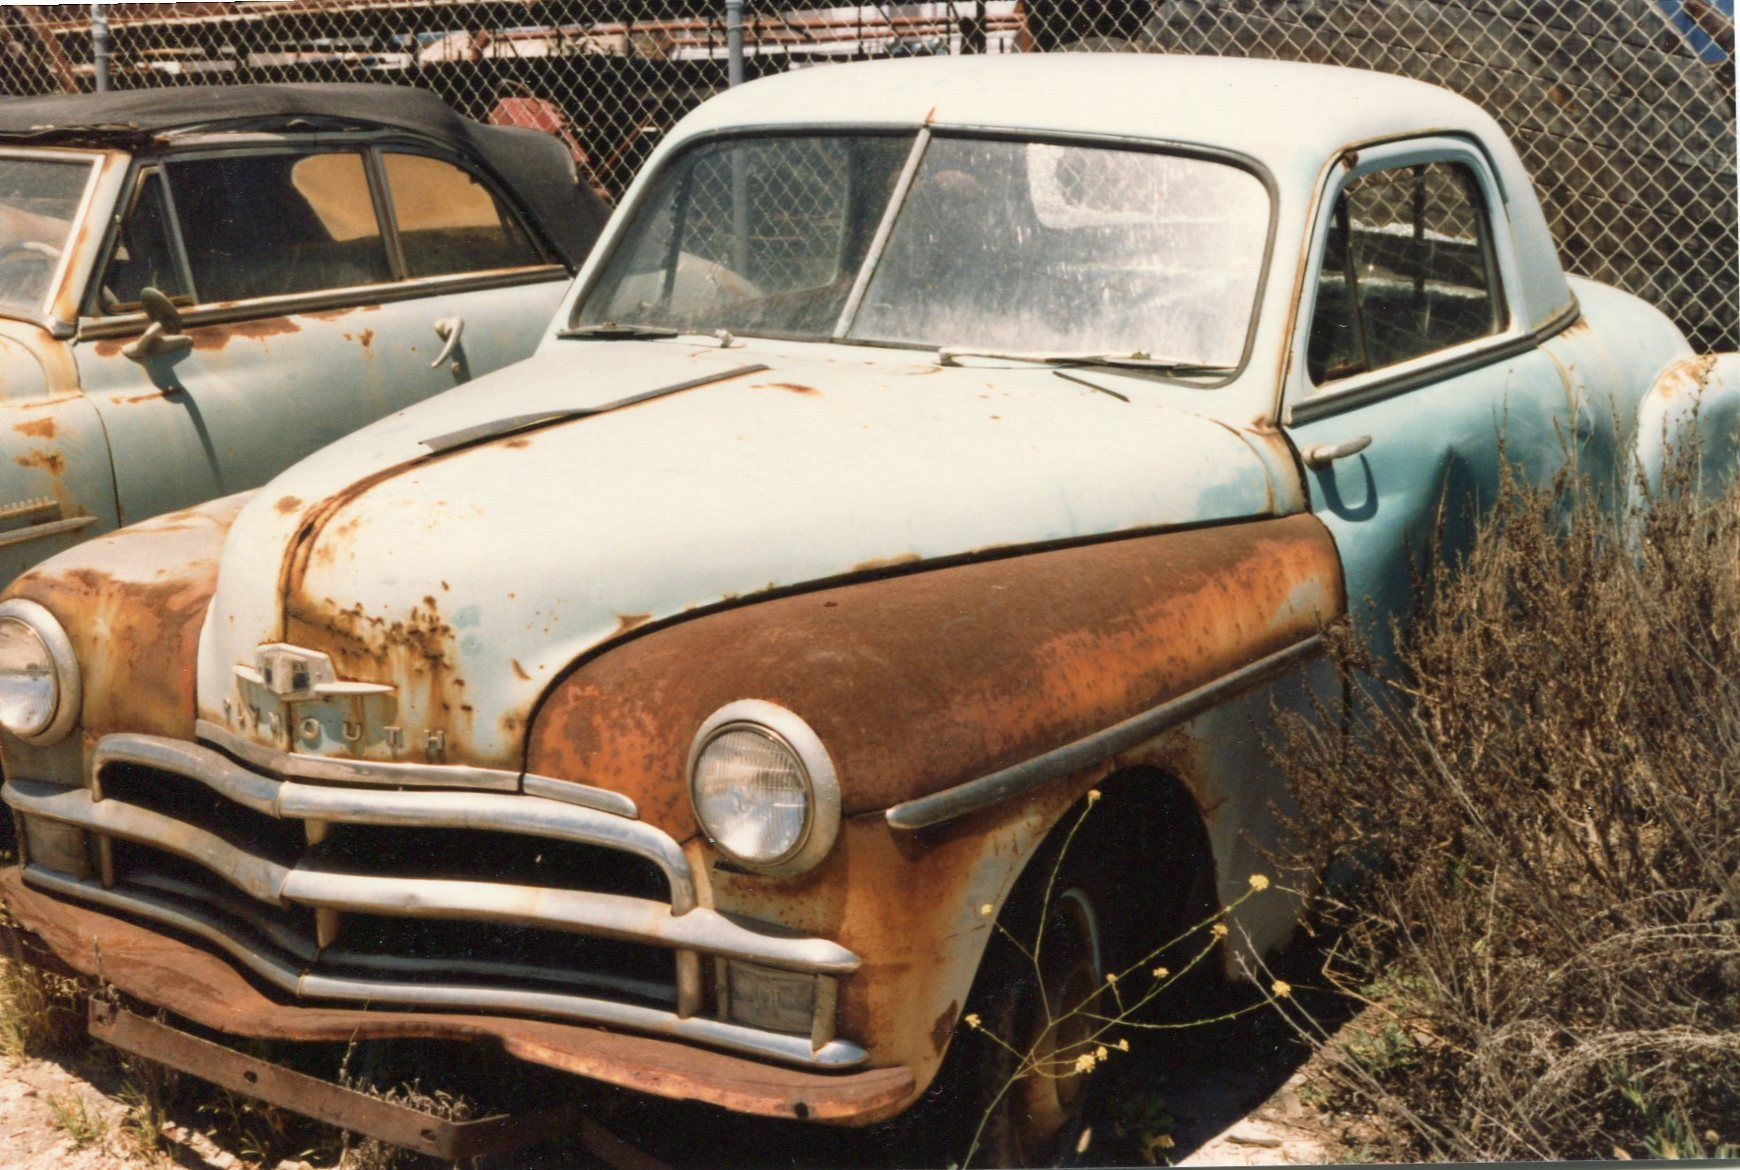 Sell My Junk Car Used Car Dealer Cars Near Me Old Cars